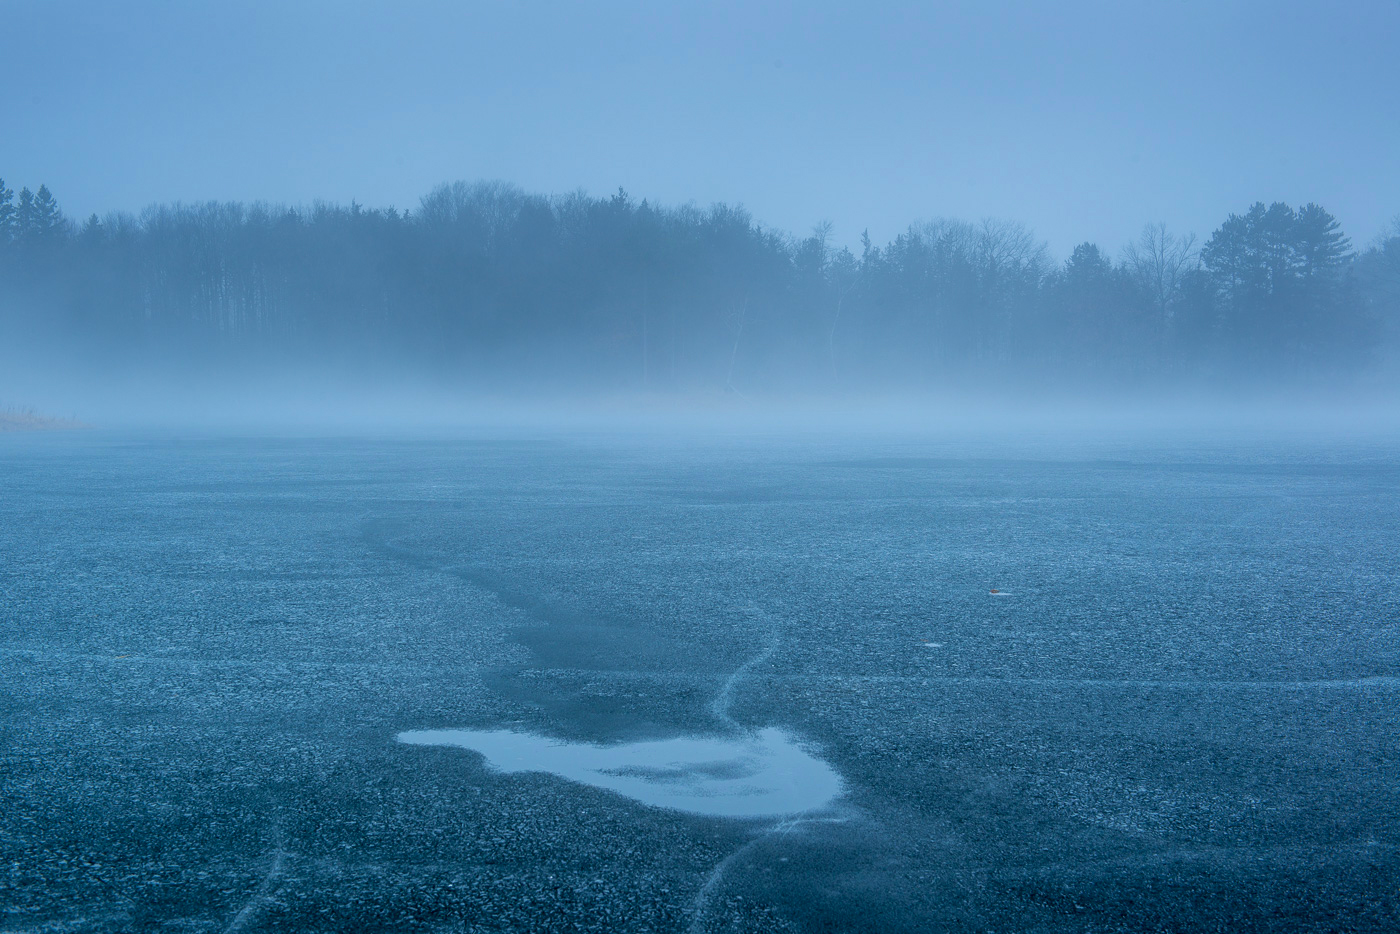 Ice and fog on Bull Lake, Allemansratt Park, Lindstrom, MN